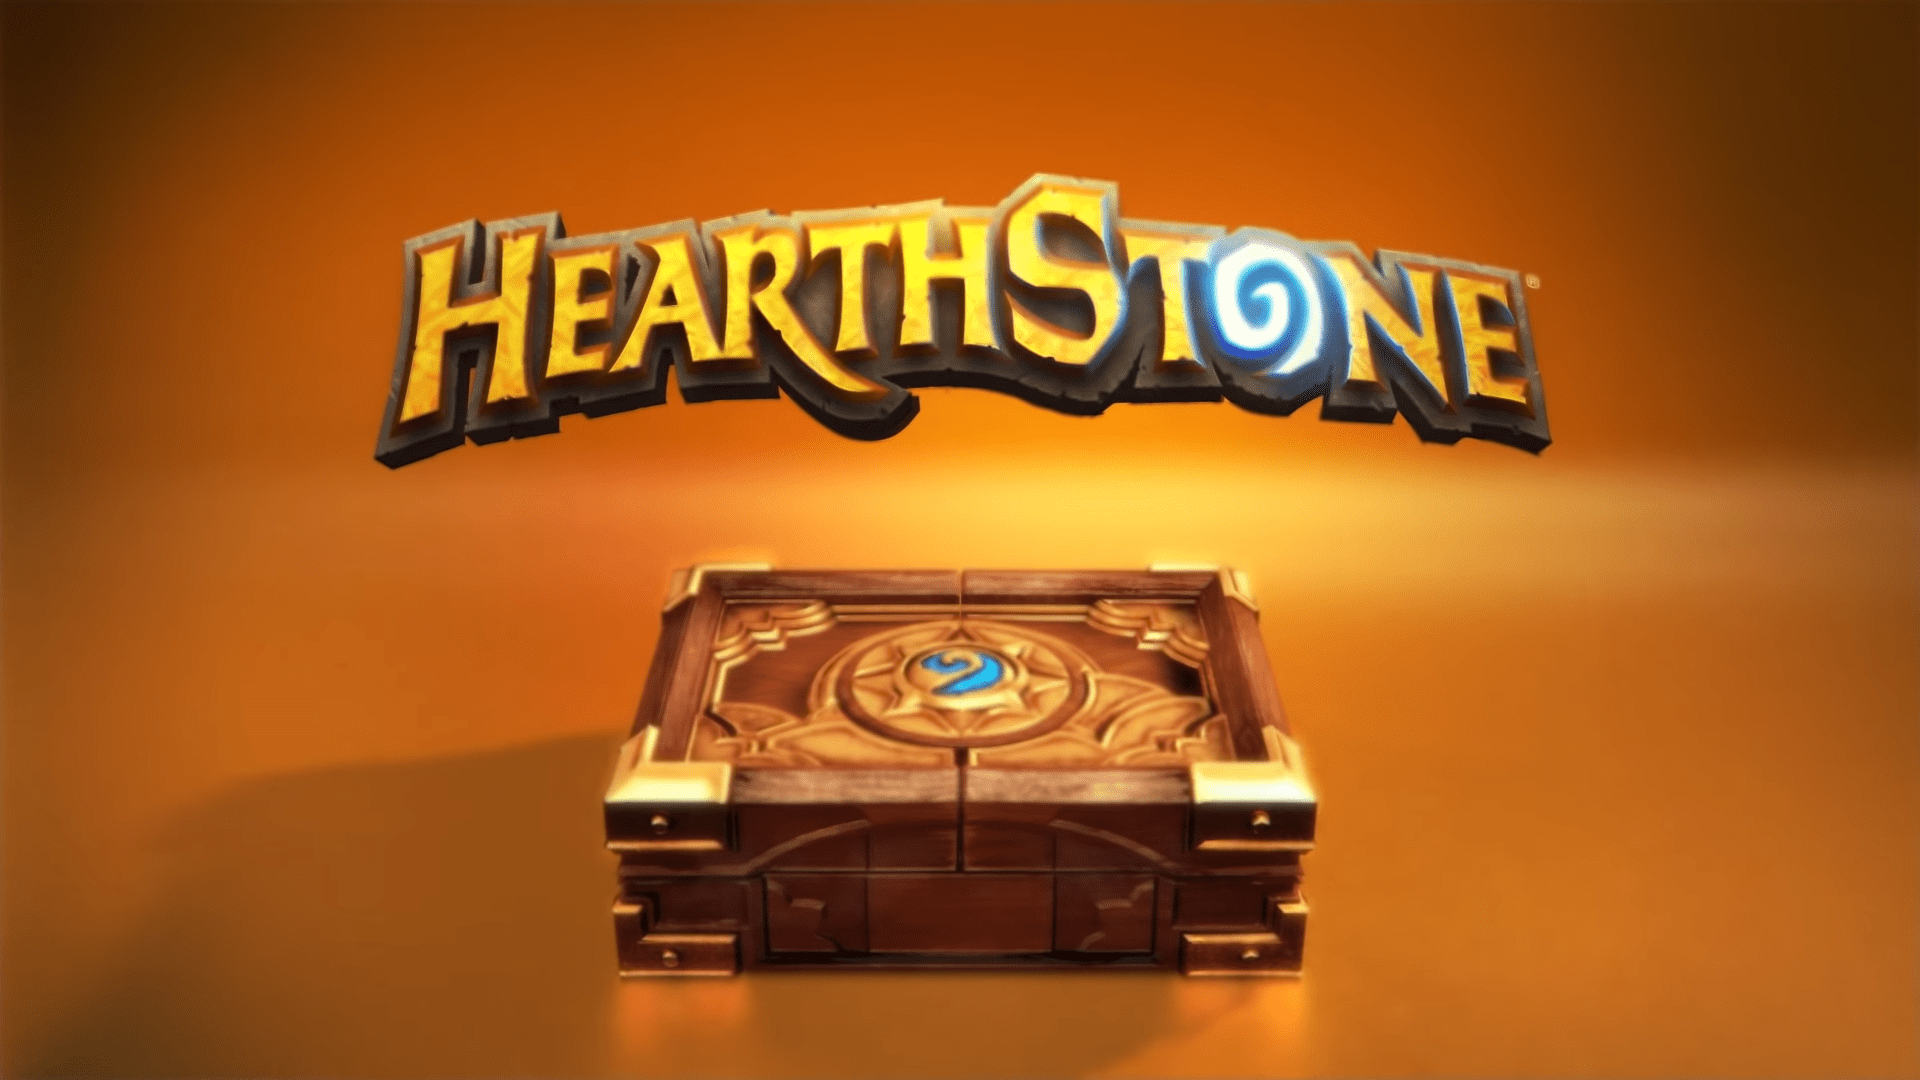 Hearthstone Battlegrounds Patch 19.2.1 Nerfs Elistra The Immortal And Introduces Some Small Bug Fixes